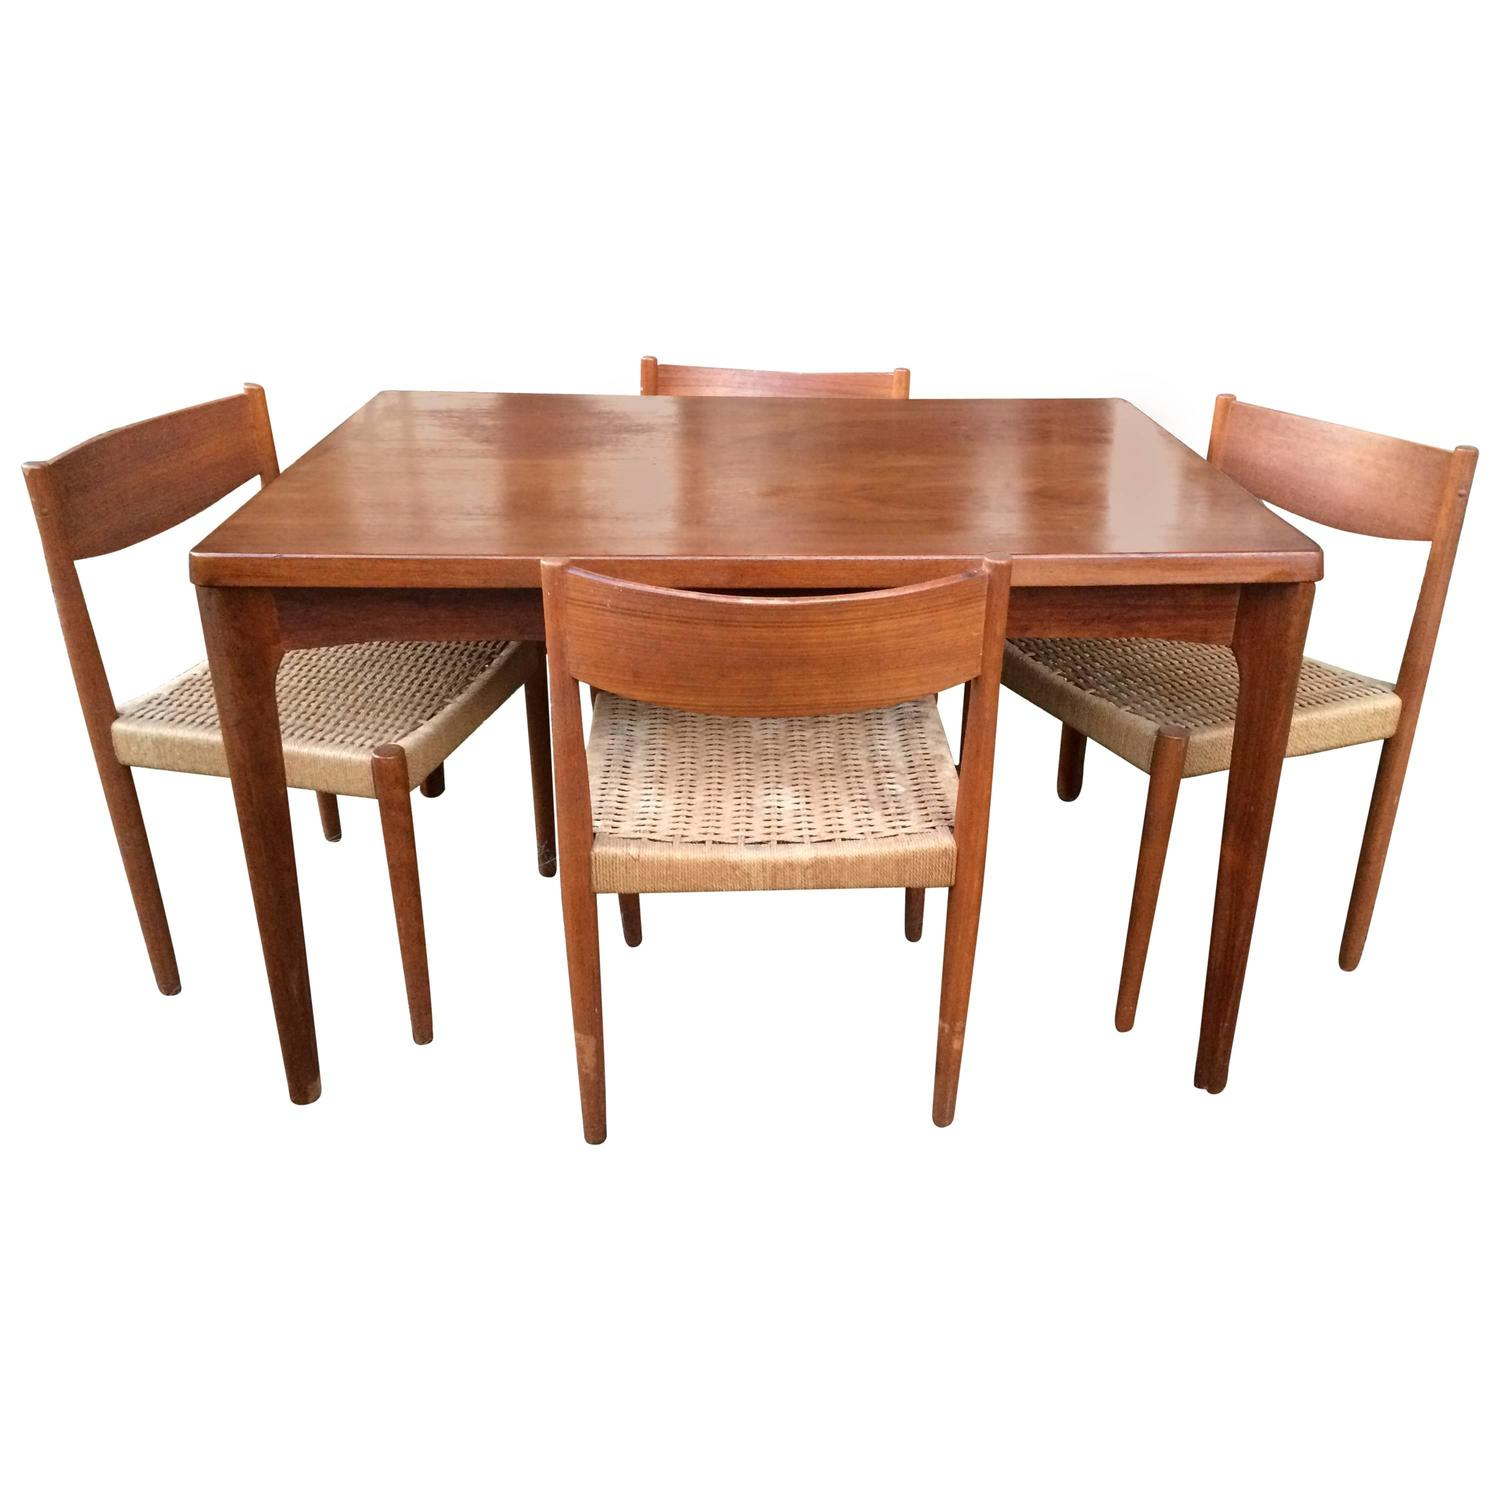 Danish modern extendable teak dining table with woven chairs at 1stdibs - Scandinavian teak dining room furniture ...